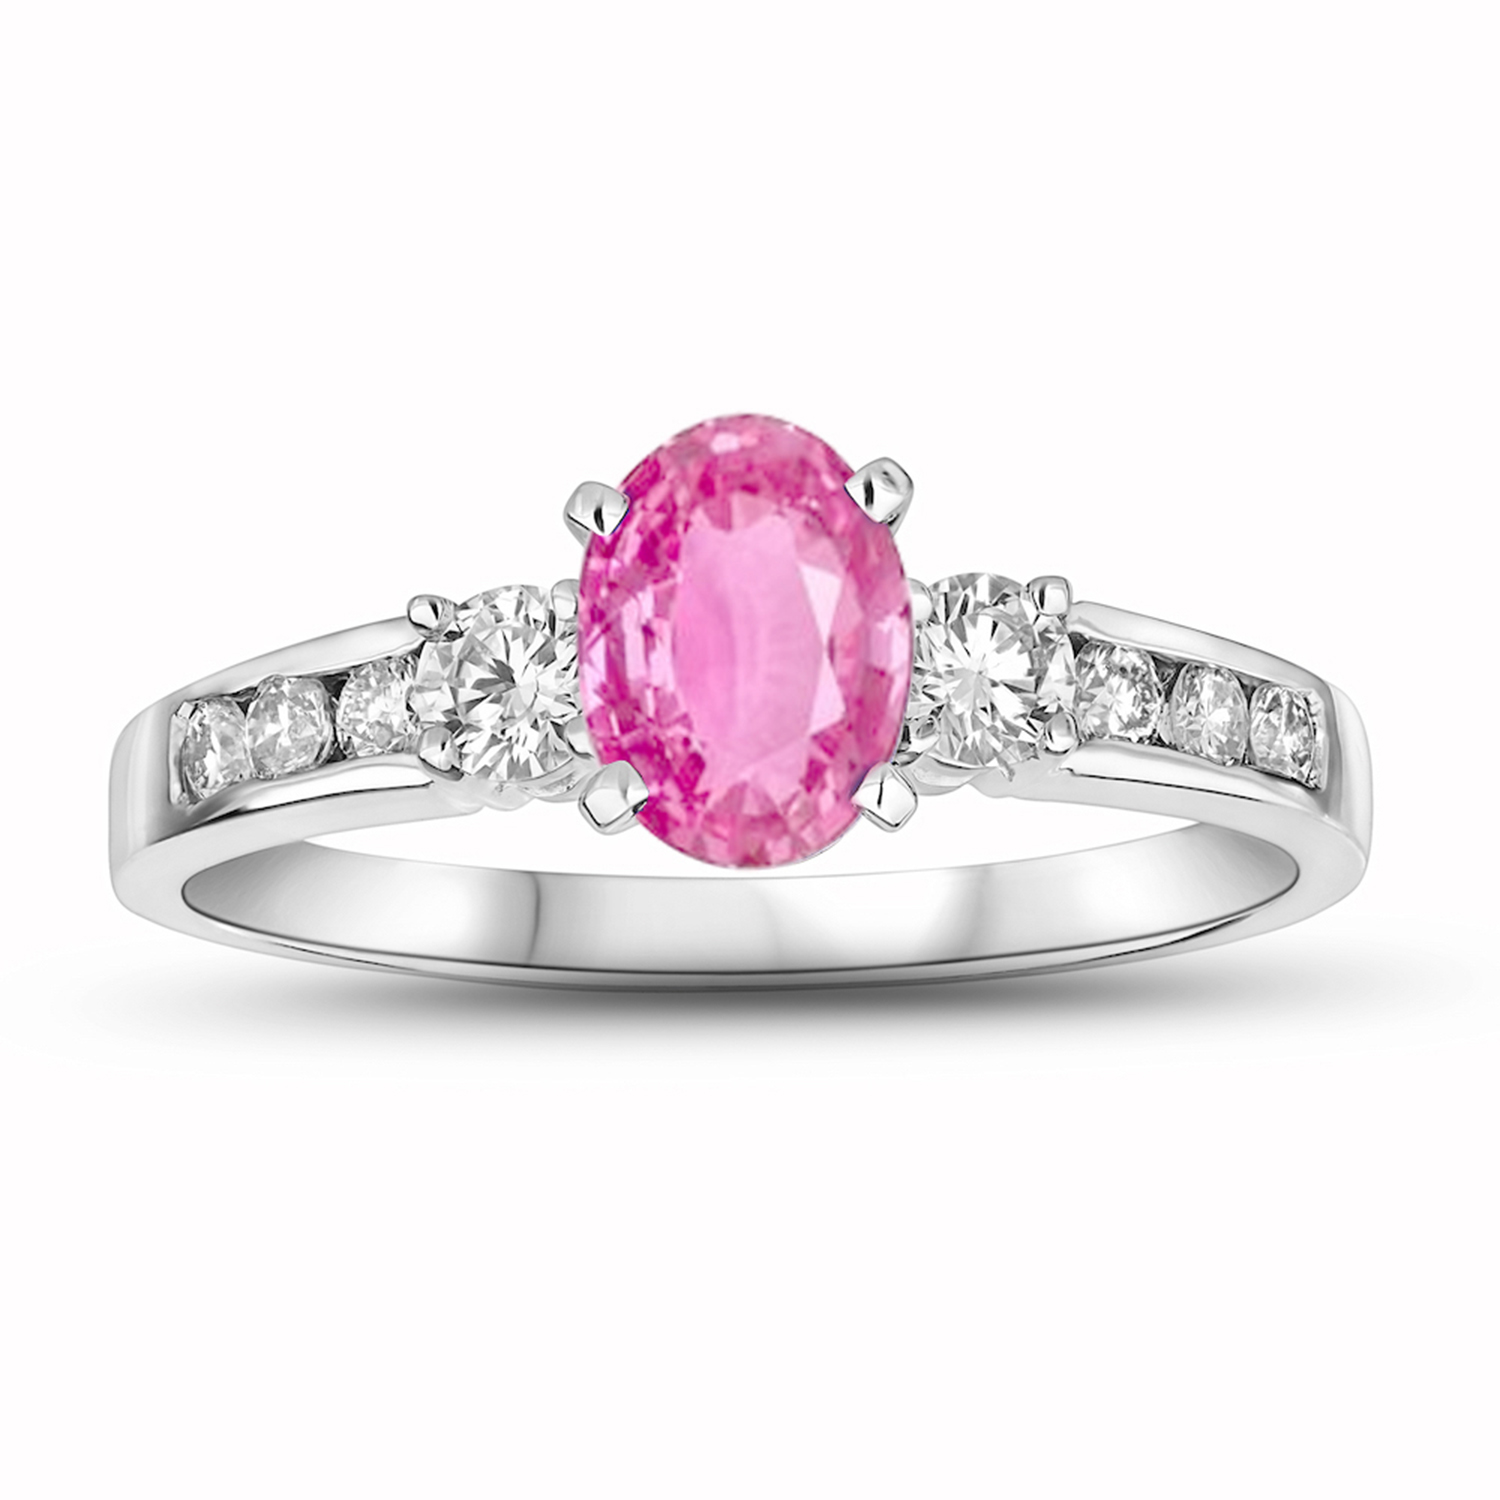 View 0.40ctw DIamond and Pink Sapphire Engagement Ring in 14k Gold